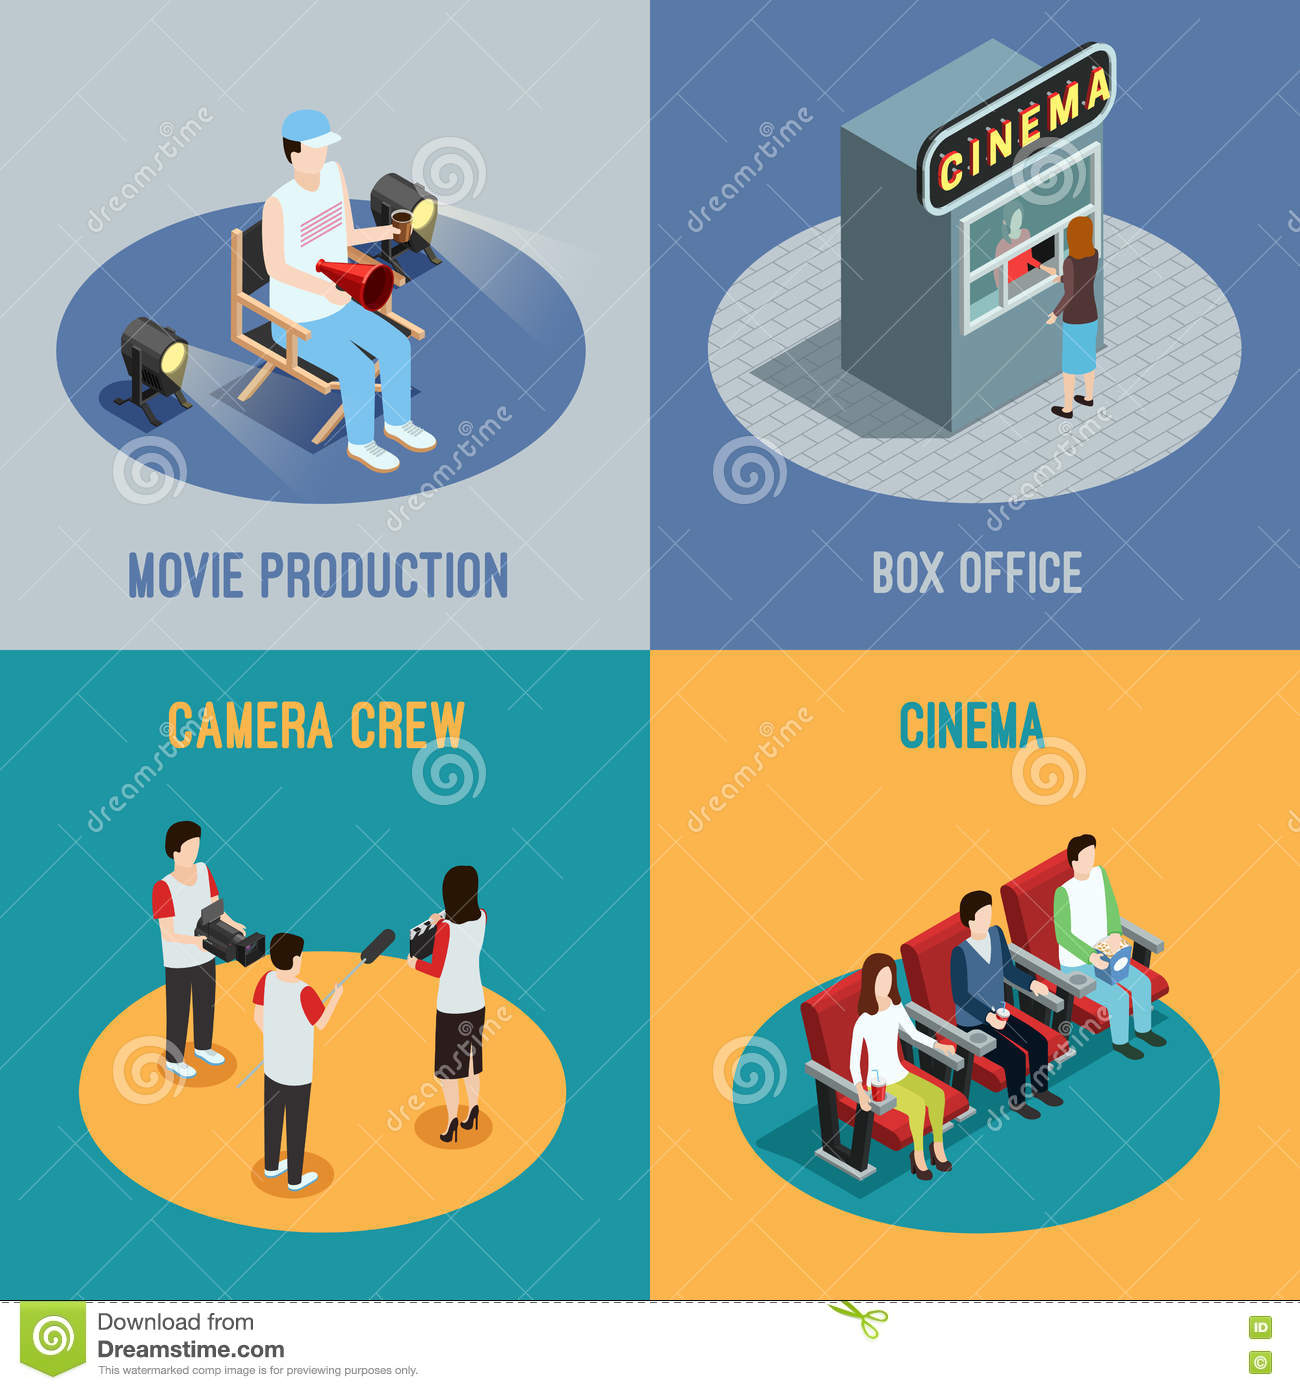 Cinema Movie 4 Isometric Icons Square Stock Vector Illustration Of